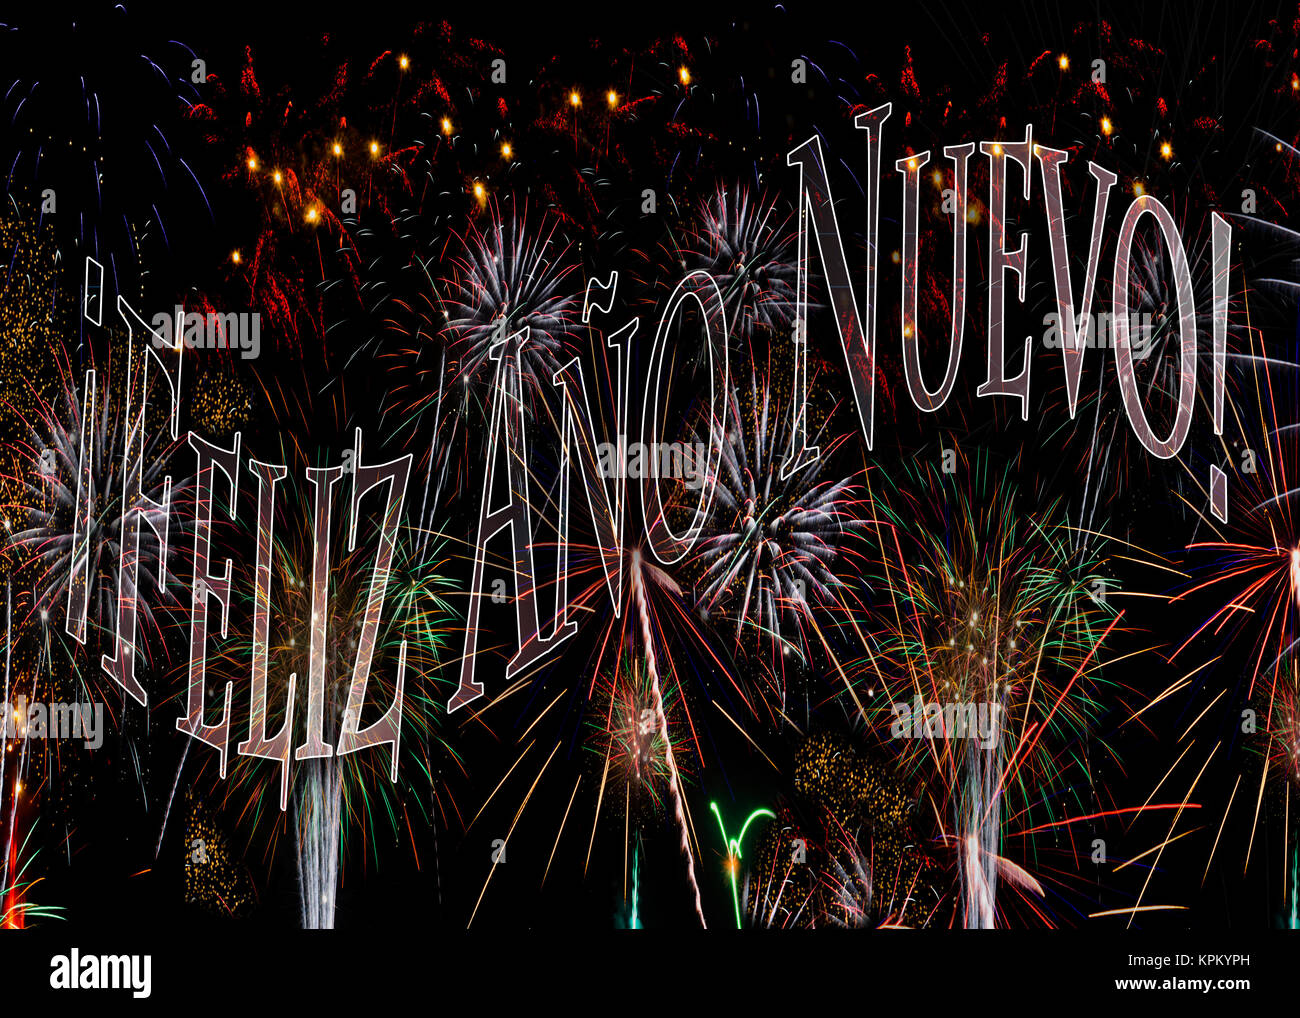 ¡Feliz Año Nuevo! Fireworks 2018  Happy New Year in Spanish. Concept available with year 2018 behind see - Stock Image